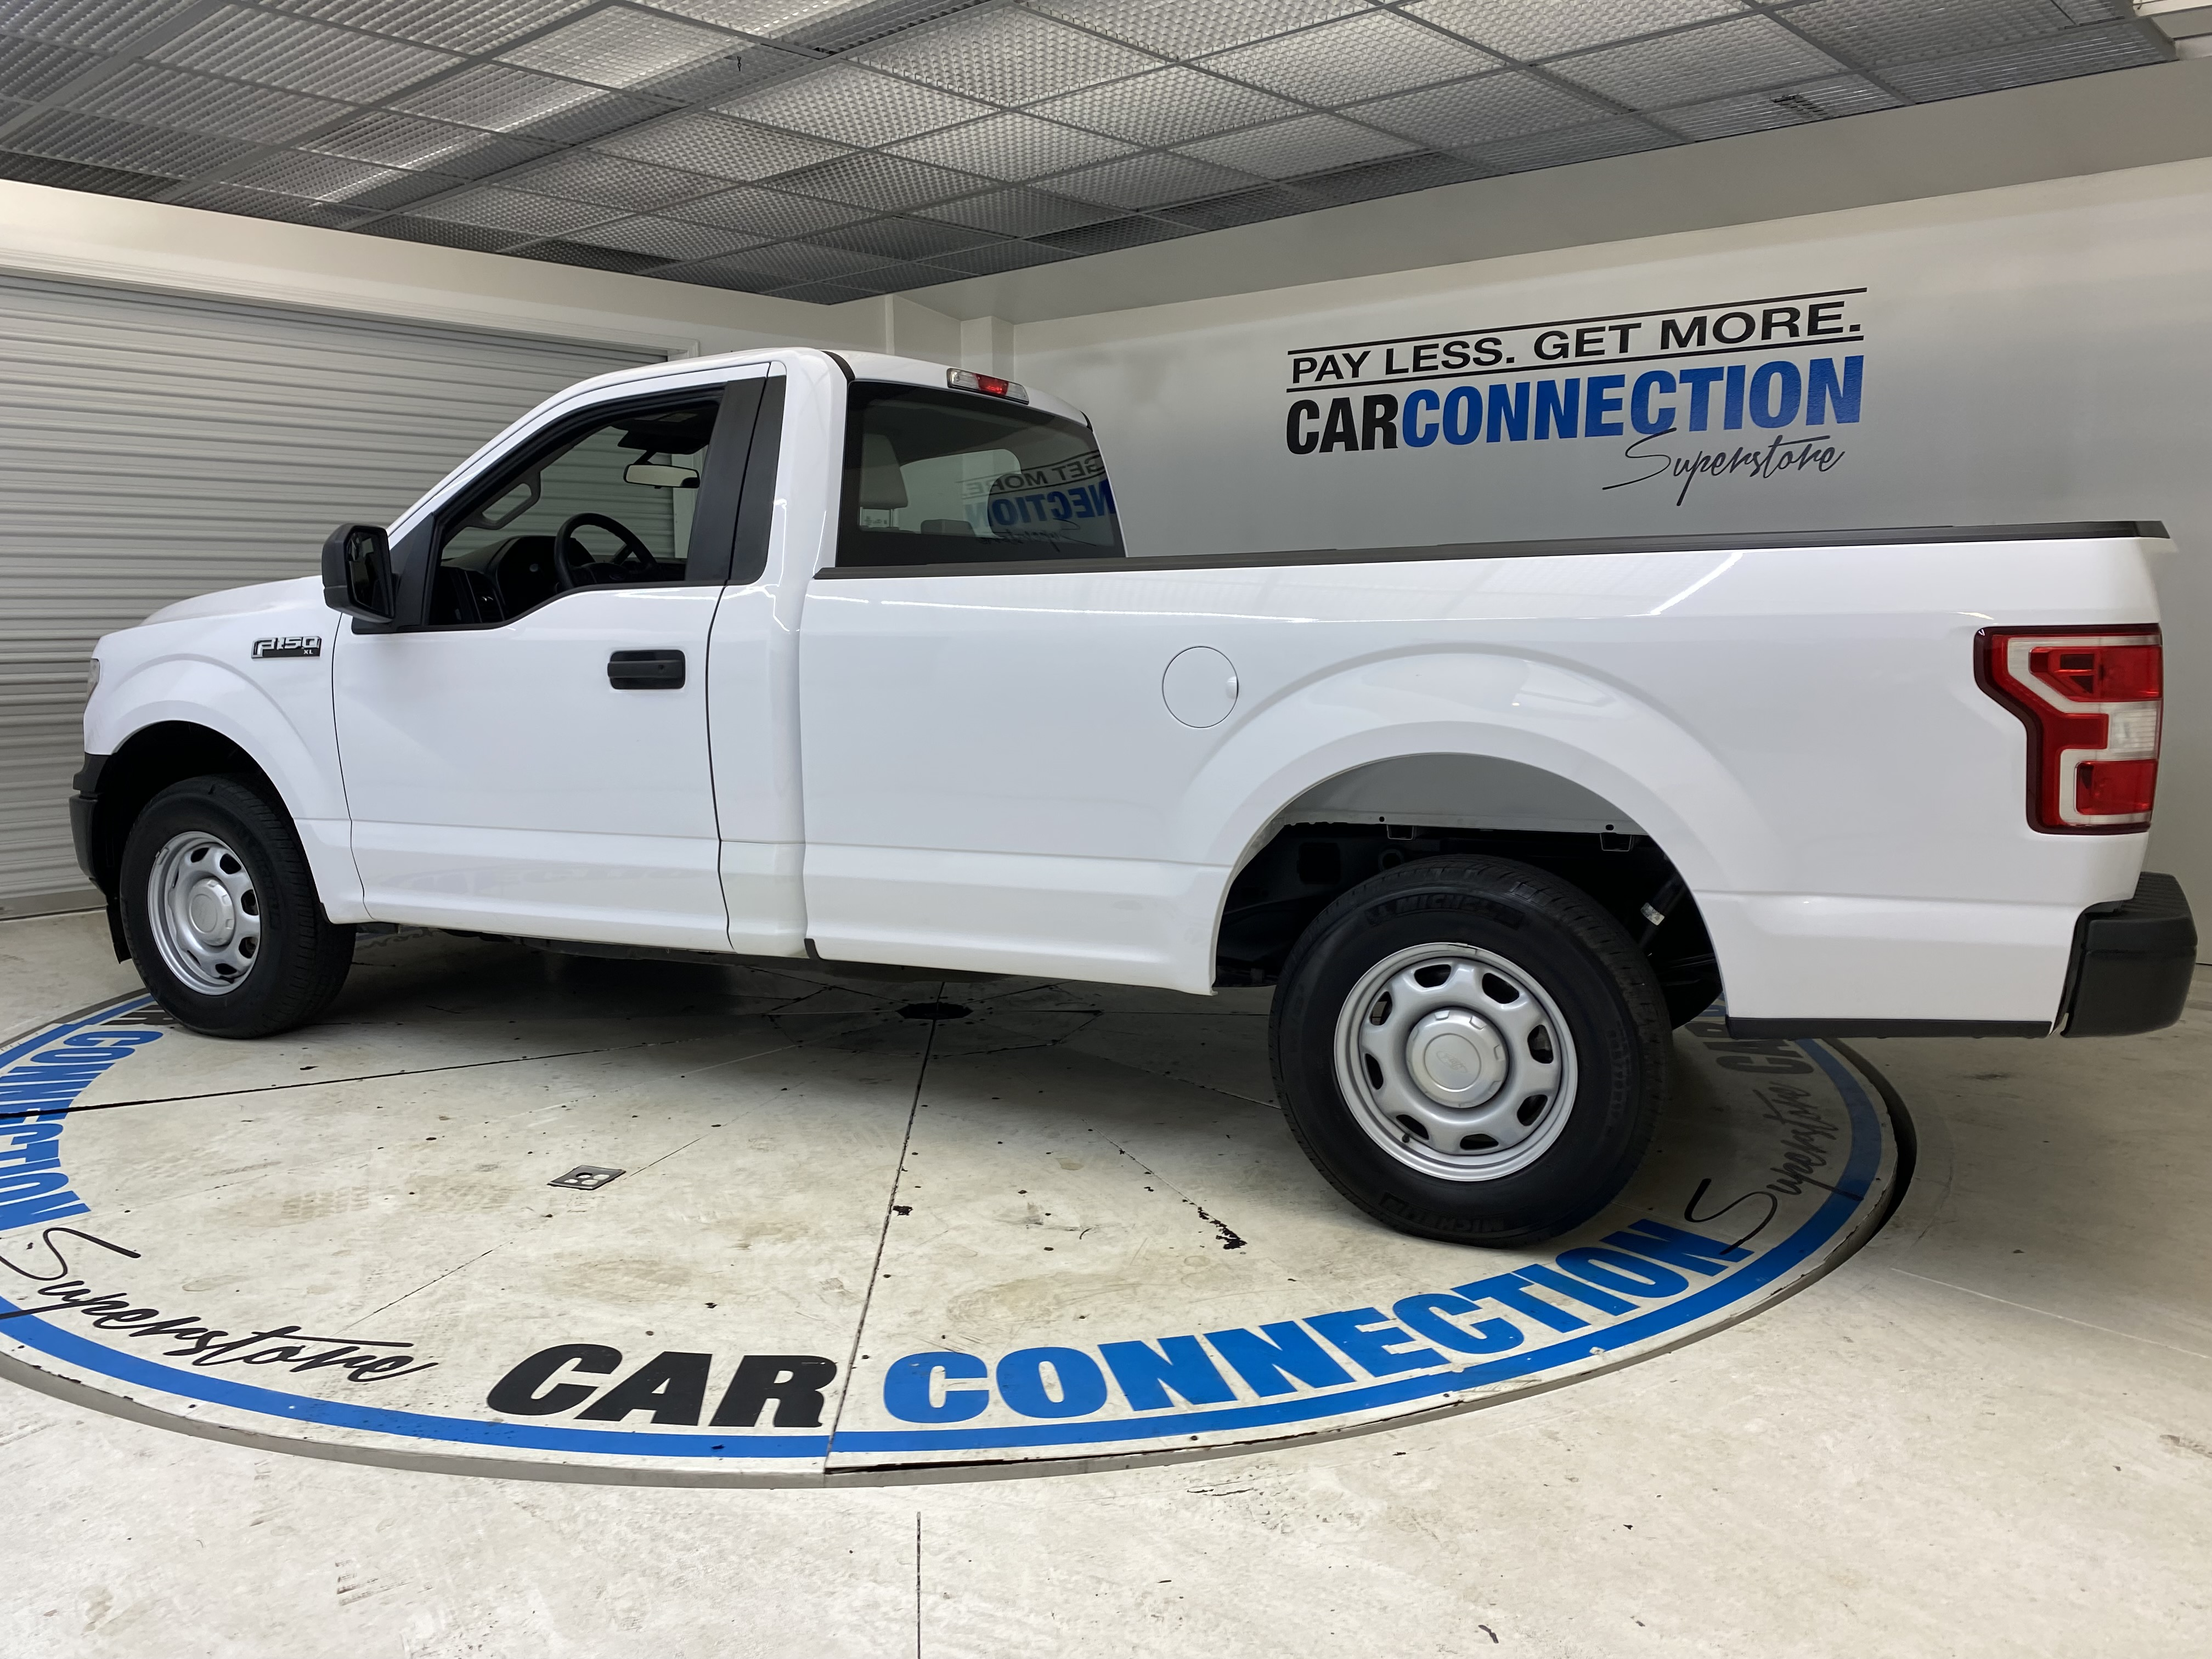 Car Connection Superstore - Used vehicle - Truck FORD F-150 Long Bed 2020